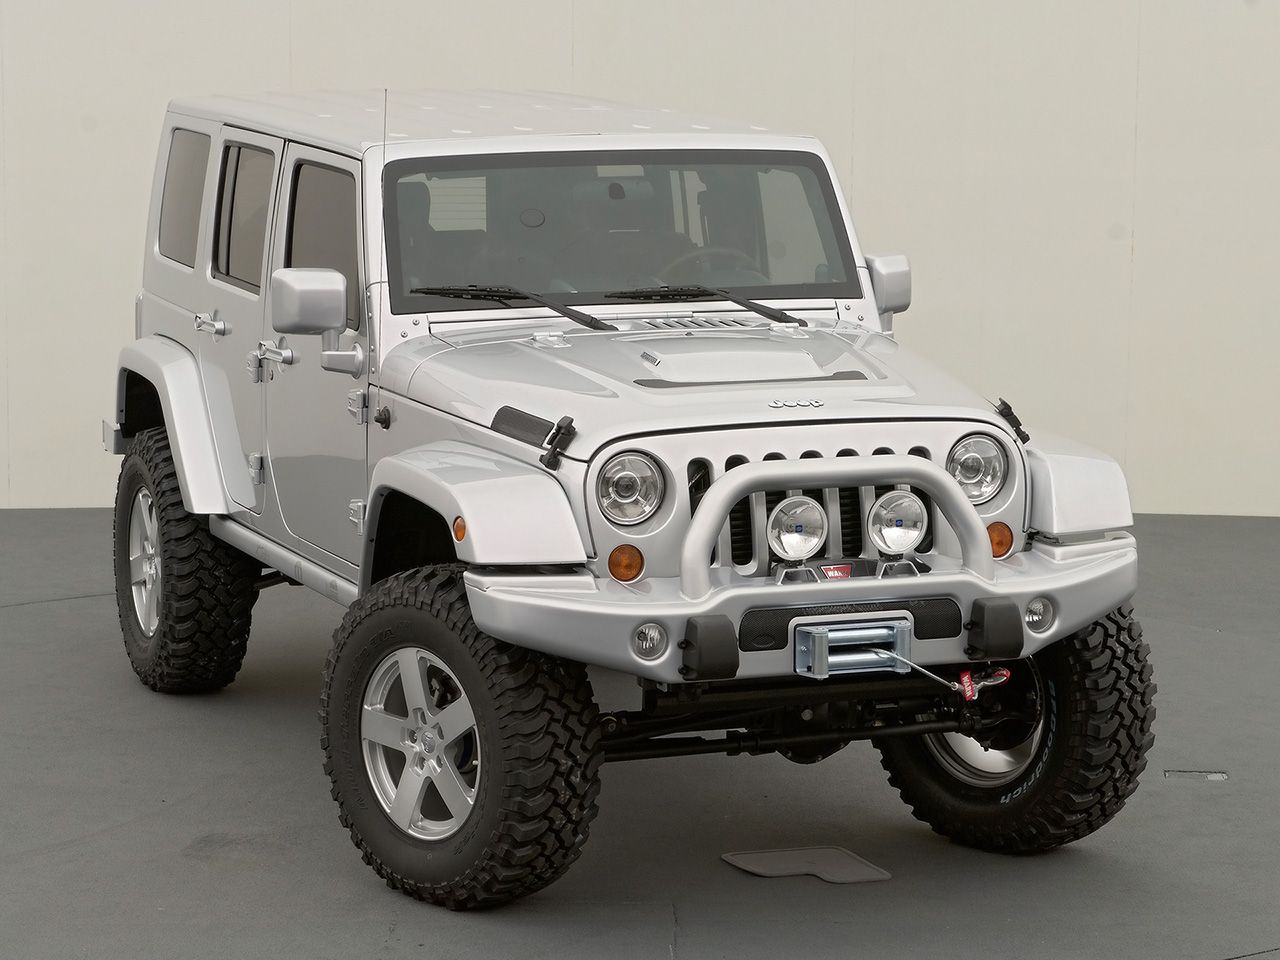 Jeep Wrangler Rubicon Unlimited Photos News Reviews Specs